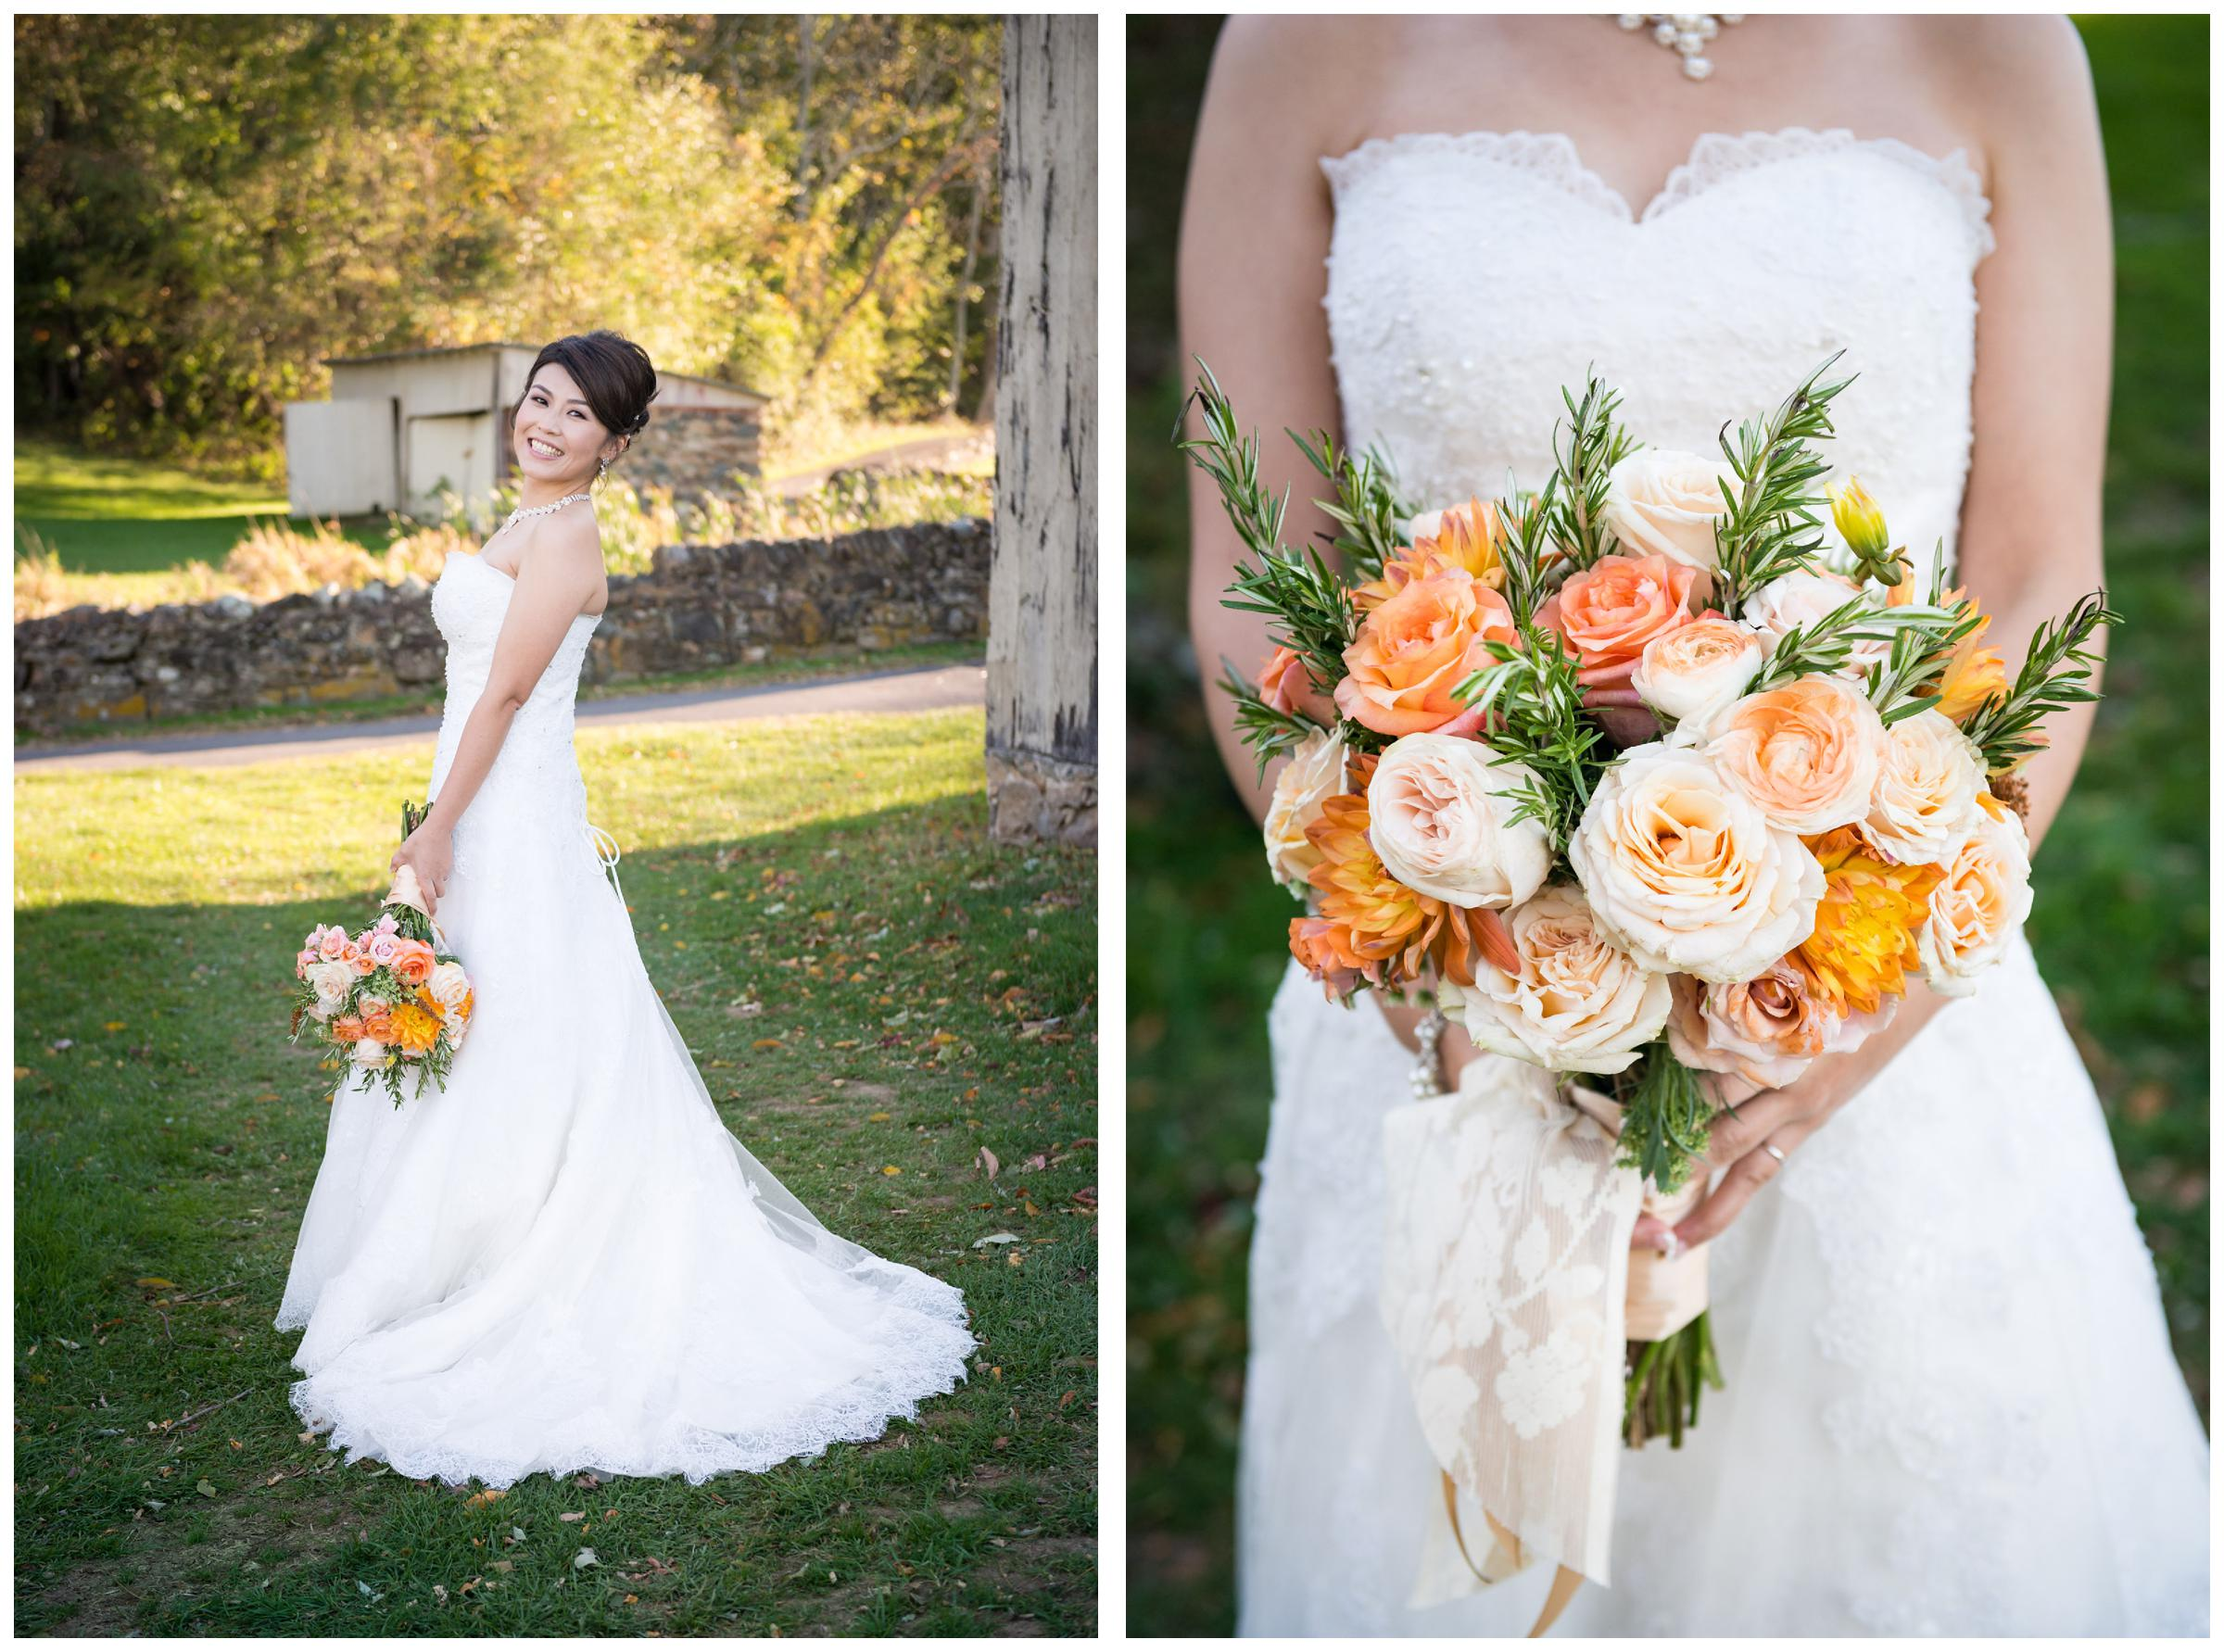 Portrait of bride and bouquet after wedding at Stoneleigh Golf Club